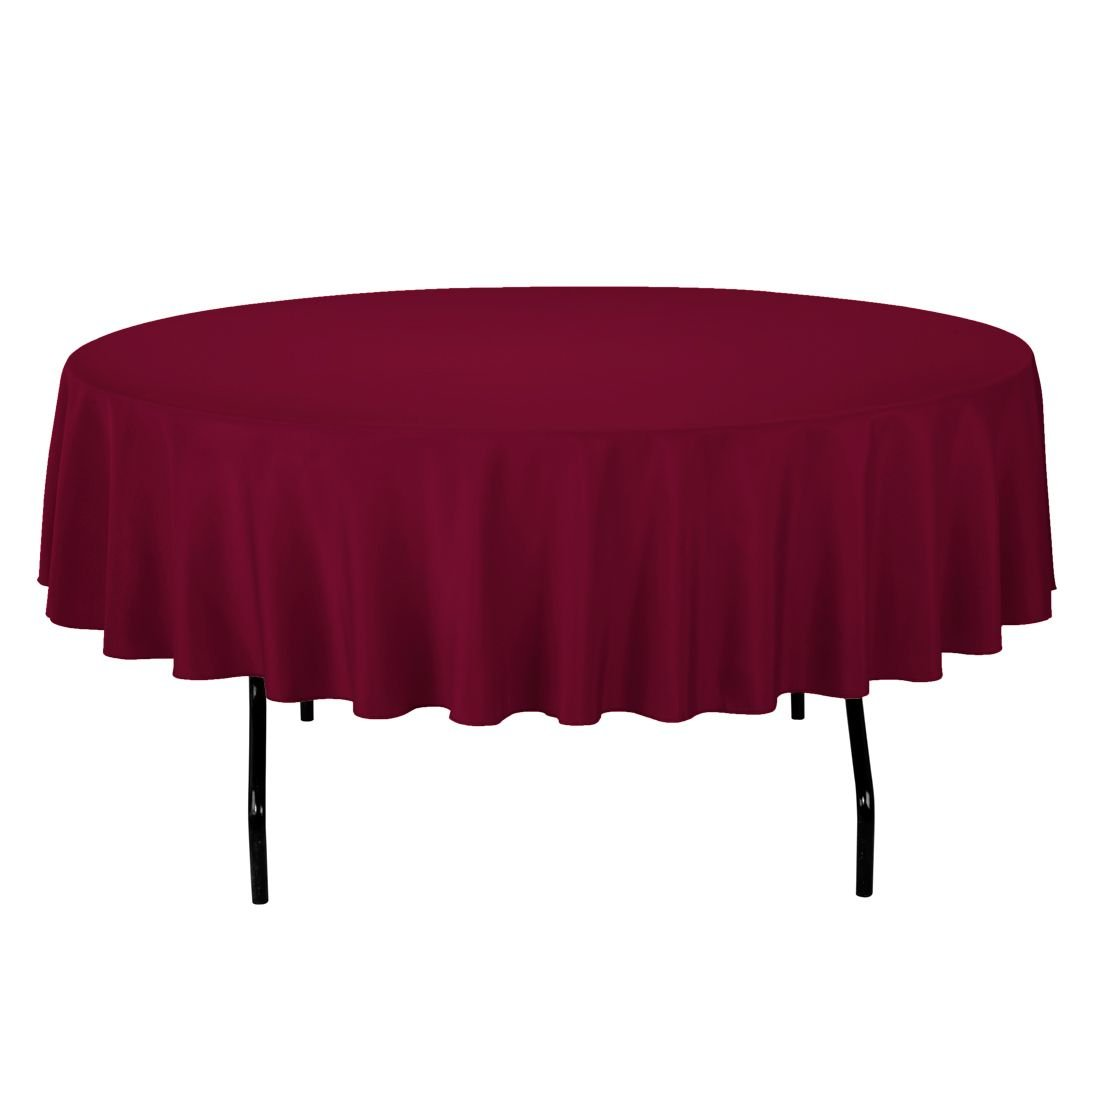 """Gee Di Moda Tablecloth - 90"""" Inch Round Tablecloths for Circular Table Cover in Burgundy Washable Polyester - Great for Buffet Table, Parties, Holiday Dinner & More"""